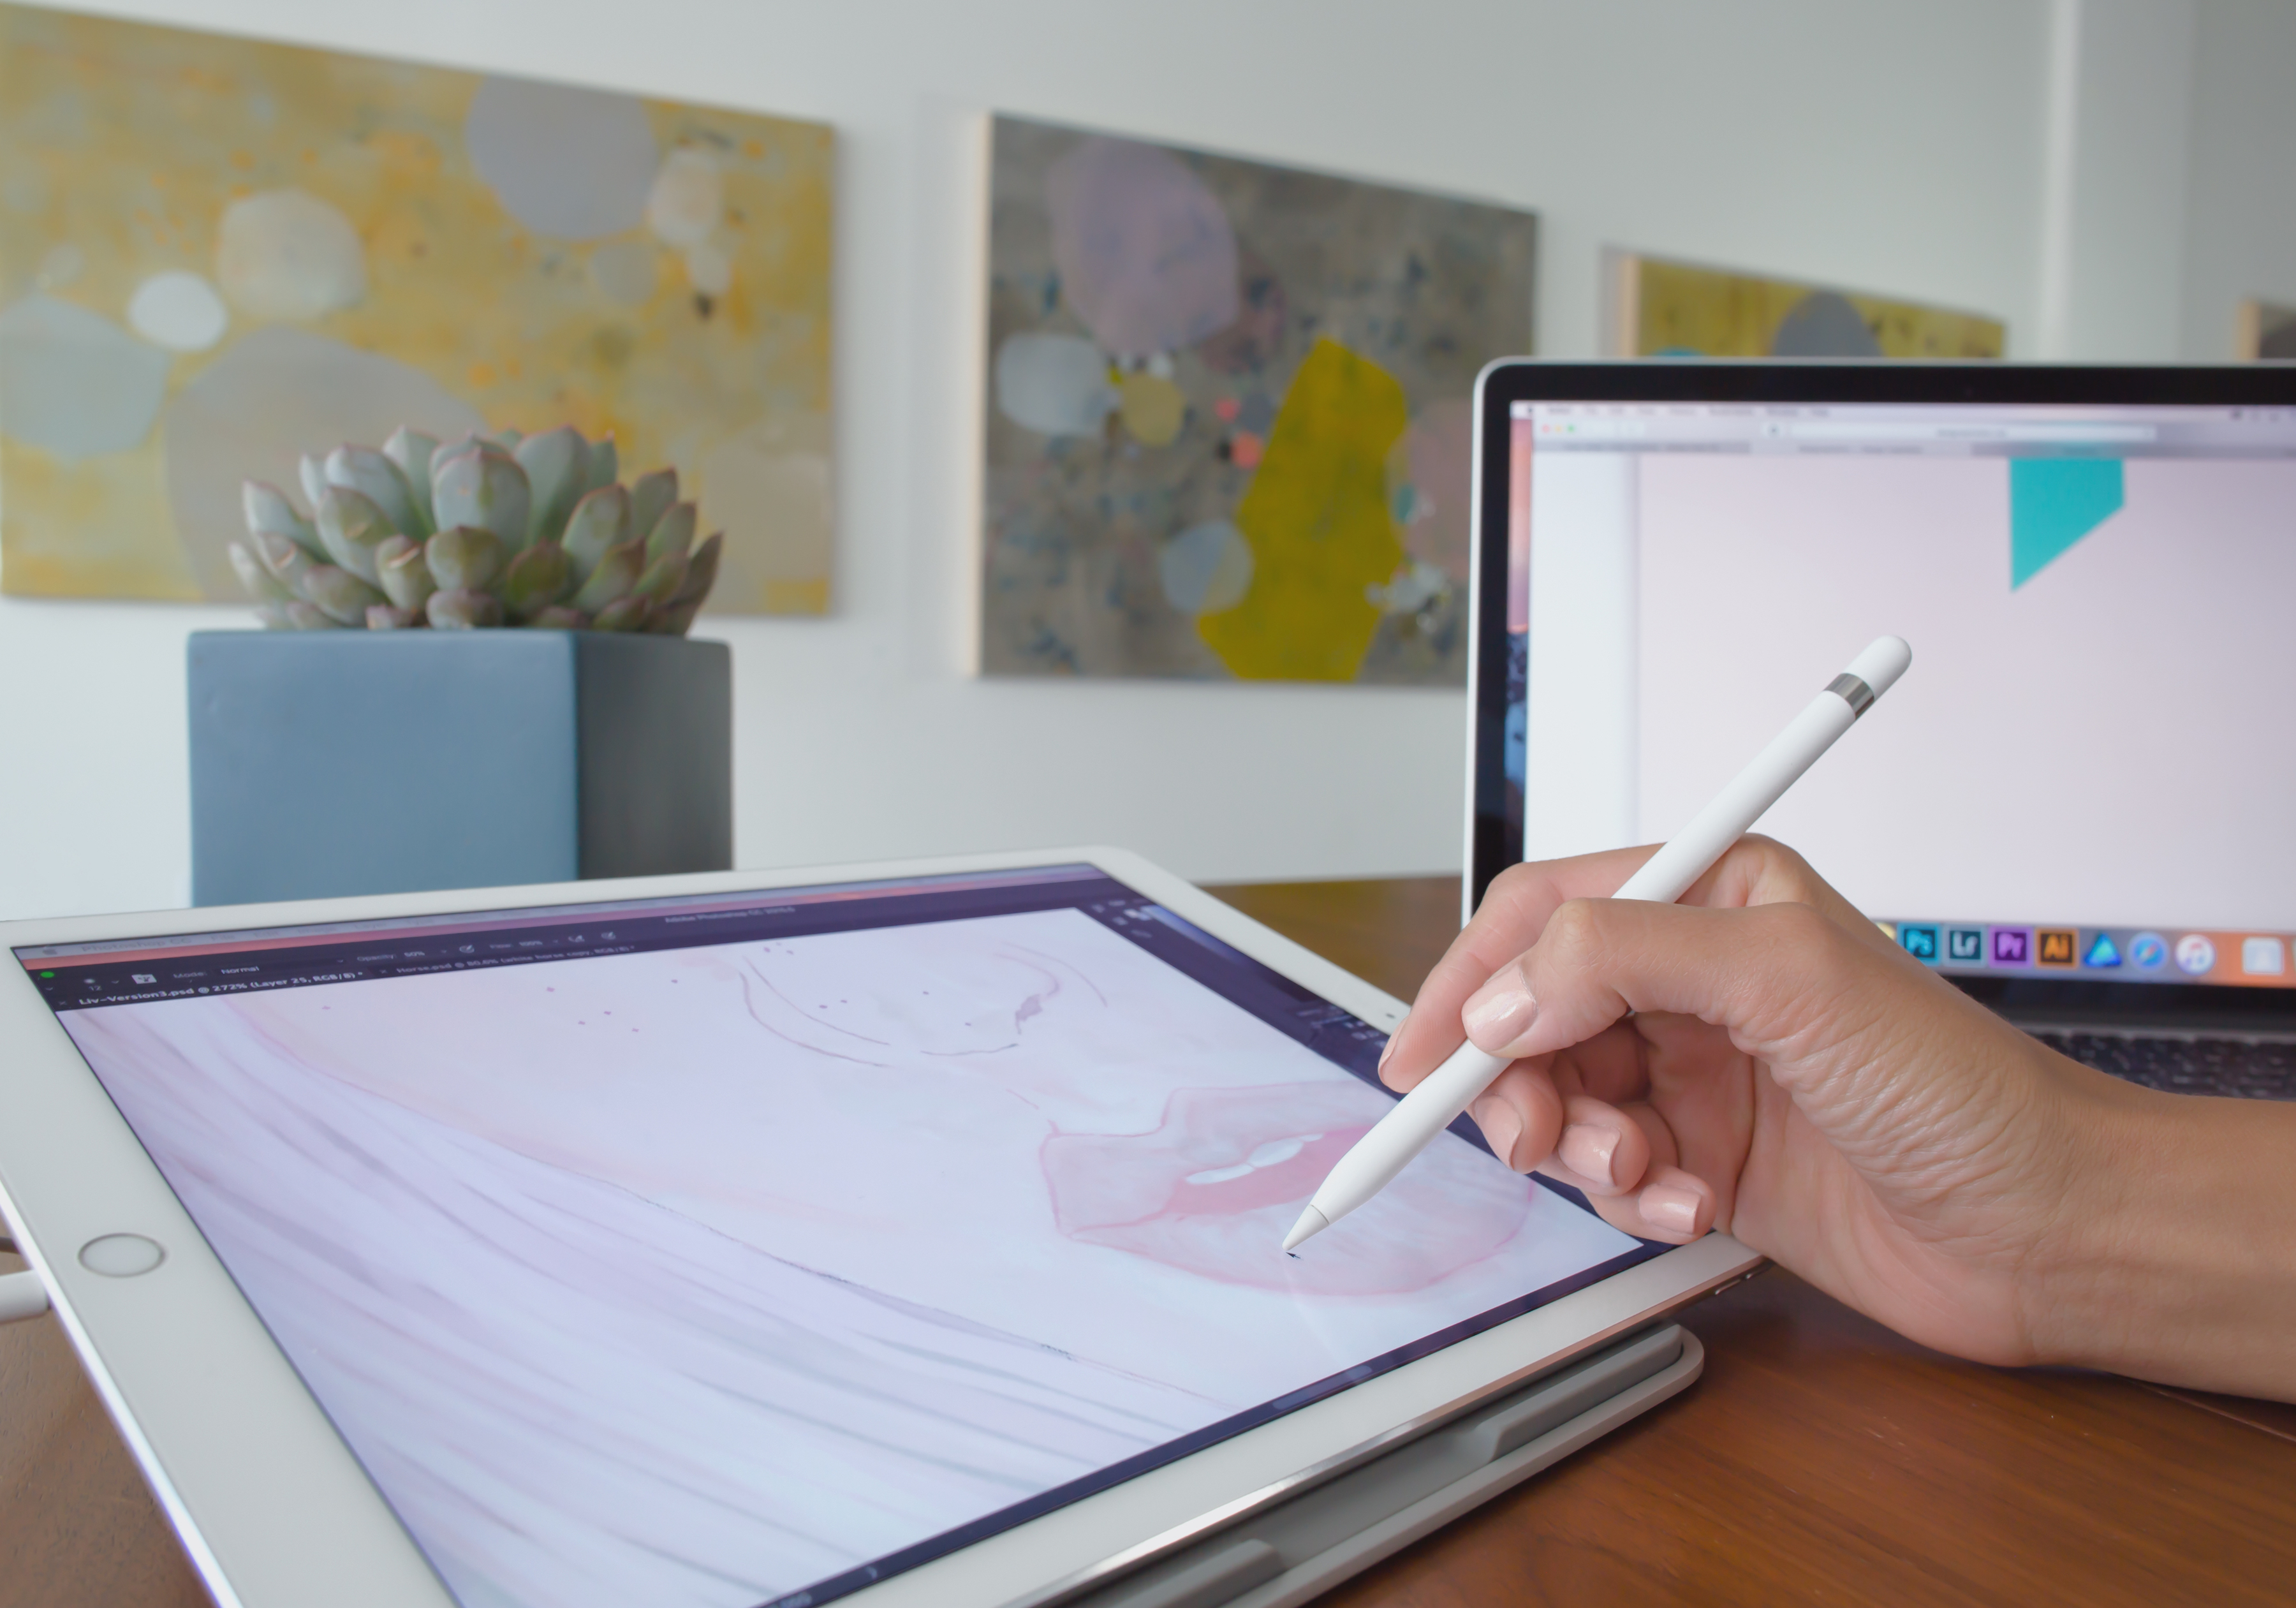 Zeichenprogramm Für Tablet Duet Pro Ex Apple Engineers Turn Your Ipad Into A Drawing Tablet